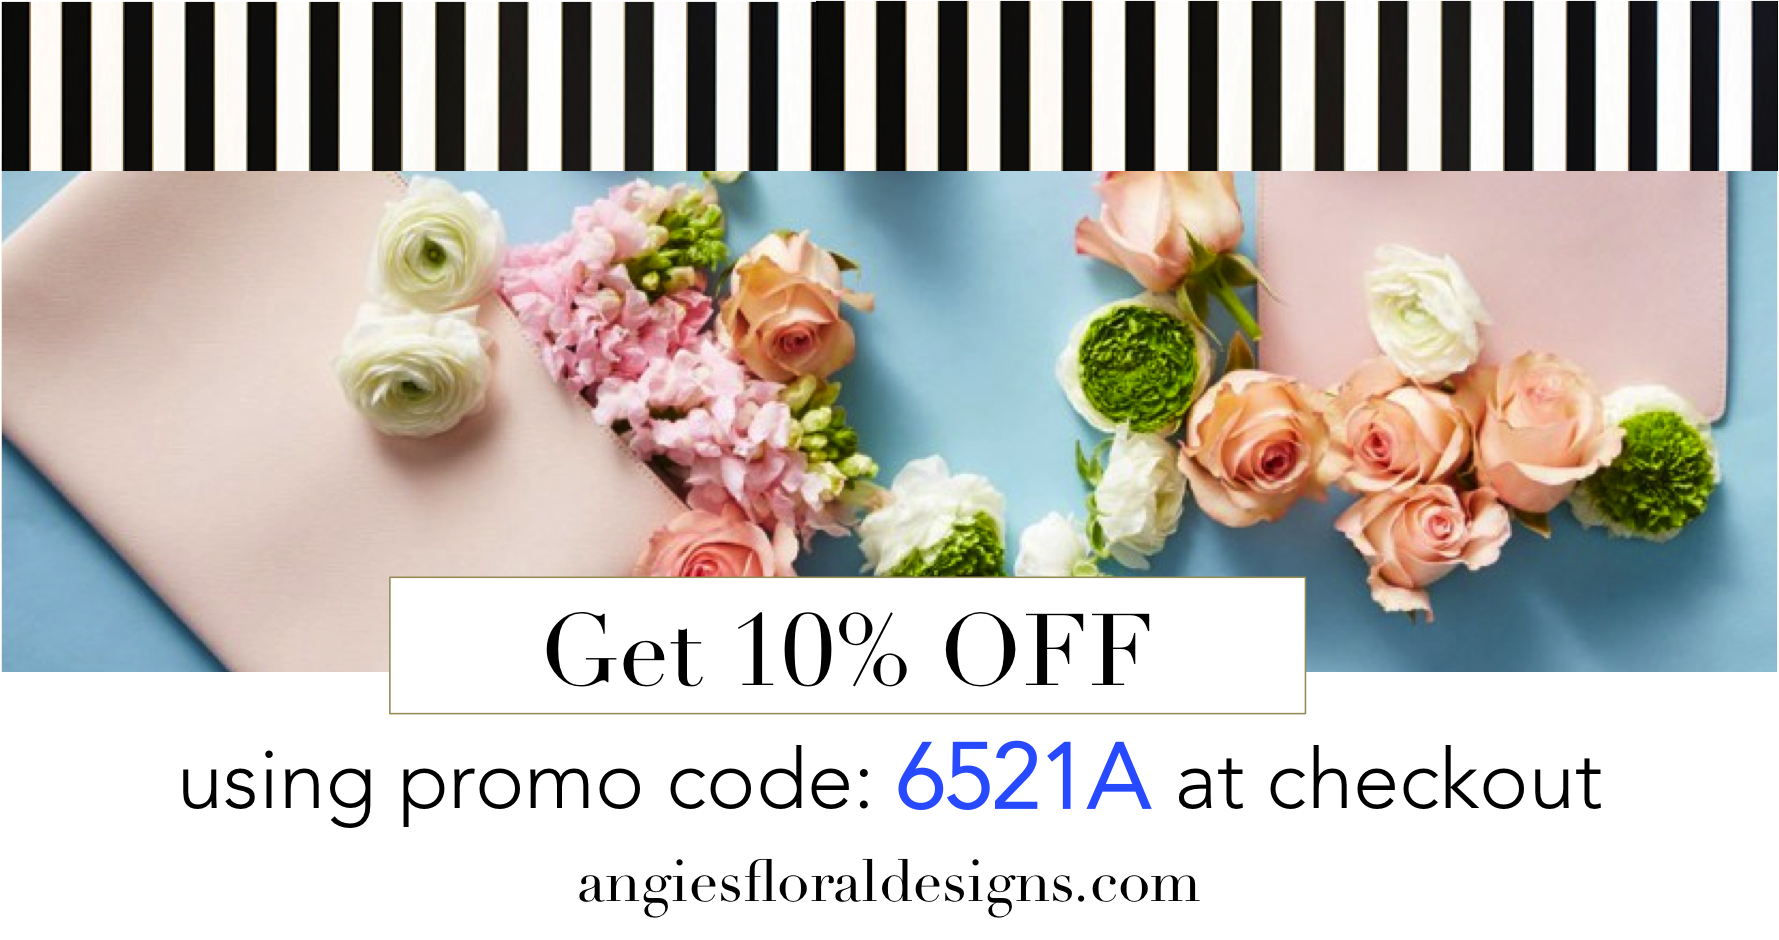 -.-a-ng-ies-angie-s-flowershop-flower-shop-el-paso-floreria-weddings-holiday-gift-cards-floral-angies-flowers-angie-s-floral-designs-el-paso-business-accounts-floral-designs-plants-gifts-shopflores-online-el-paso-texas-florist-.png